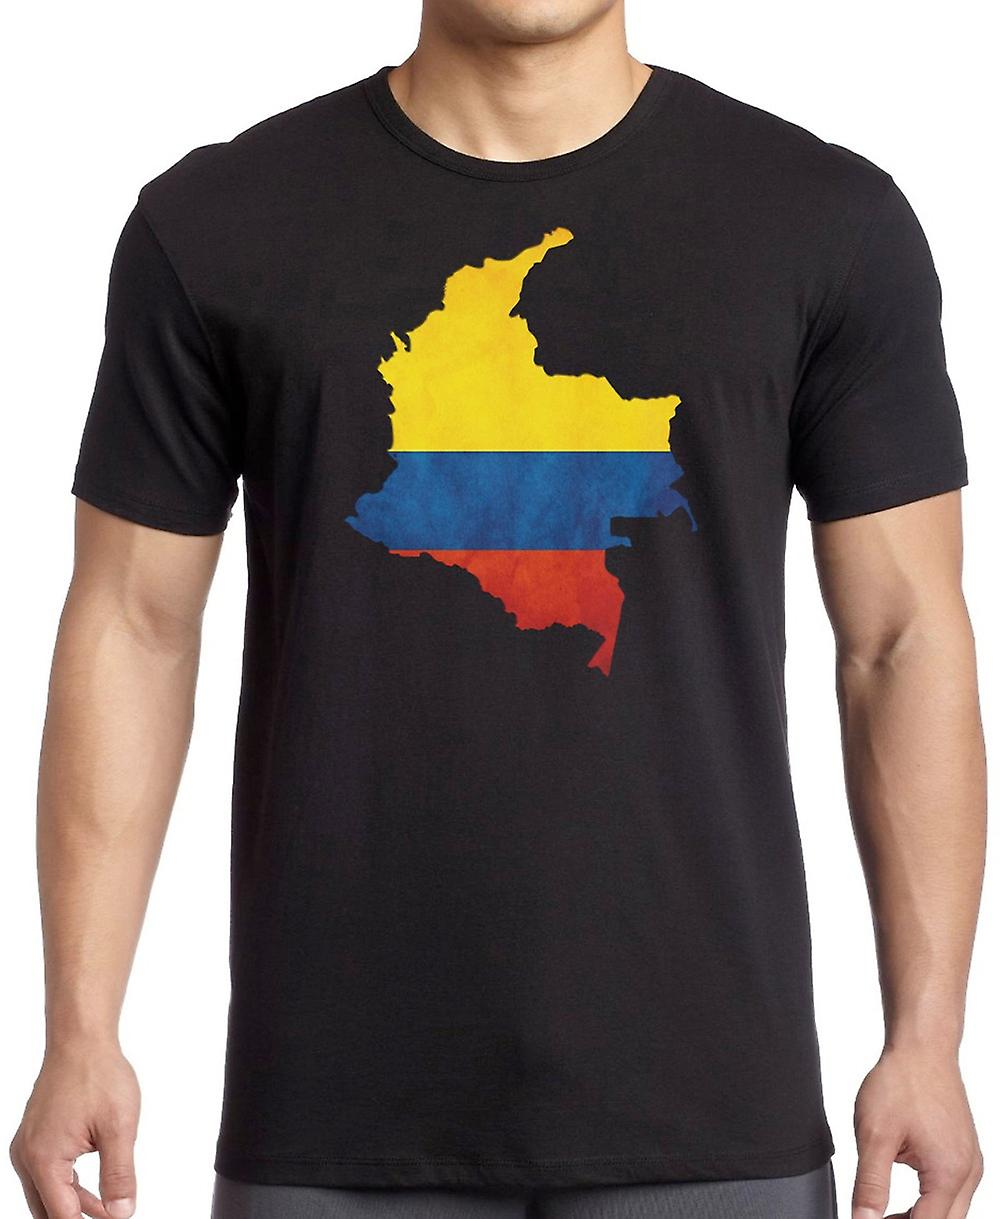 Colombie-Britannique Carte de drapeau - T-shirt